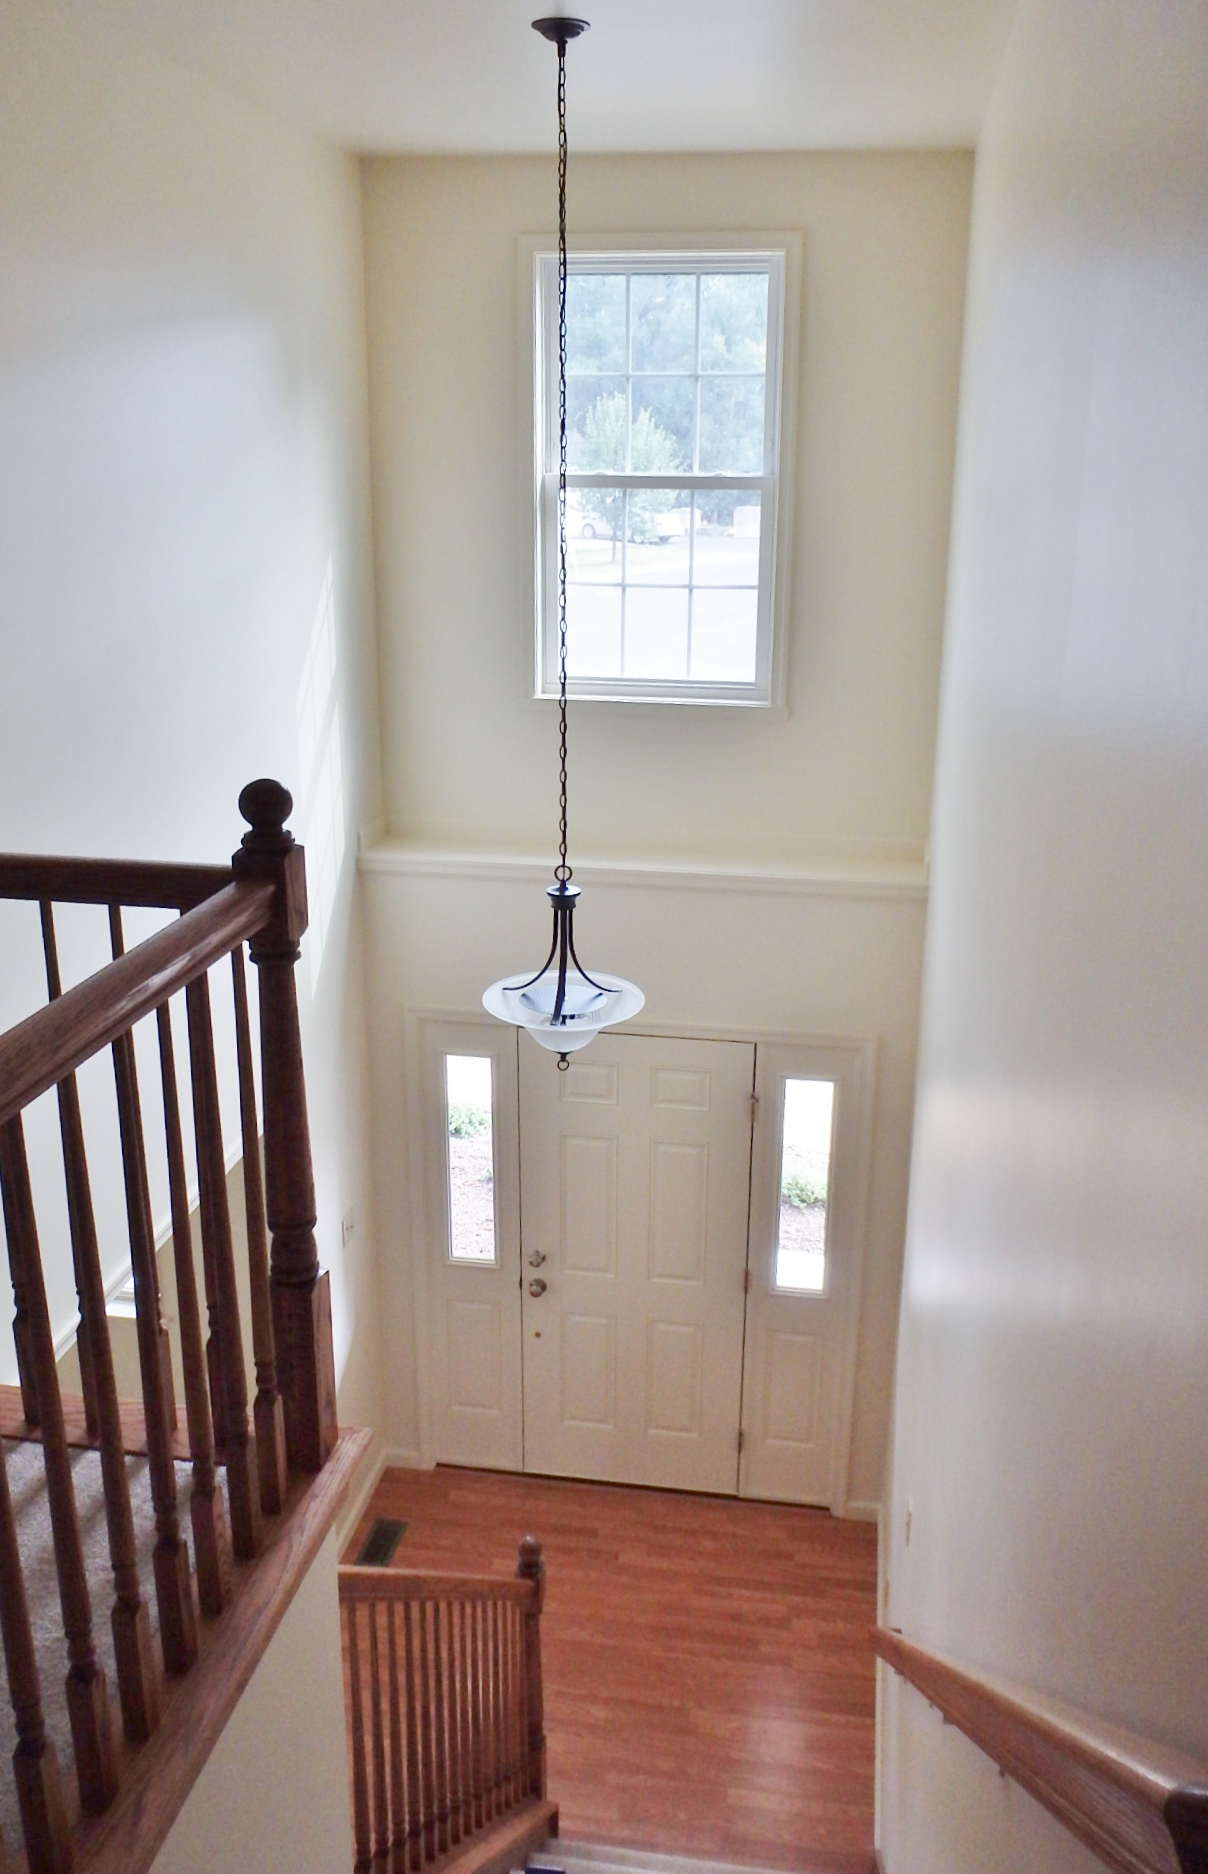 Foyer photo at 164 McKivision Court in State College PA.